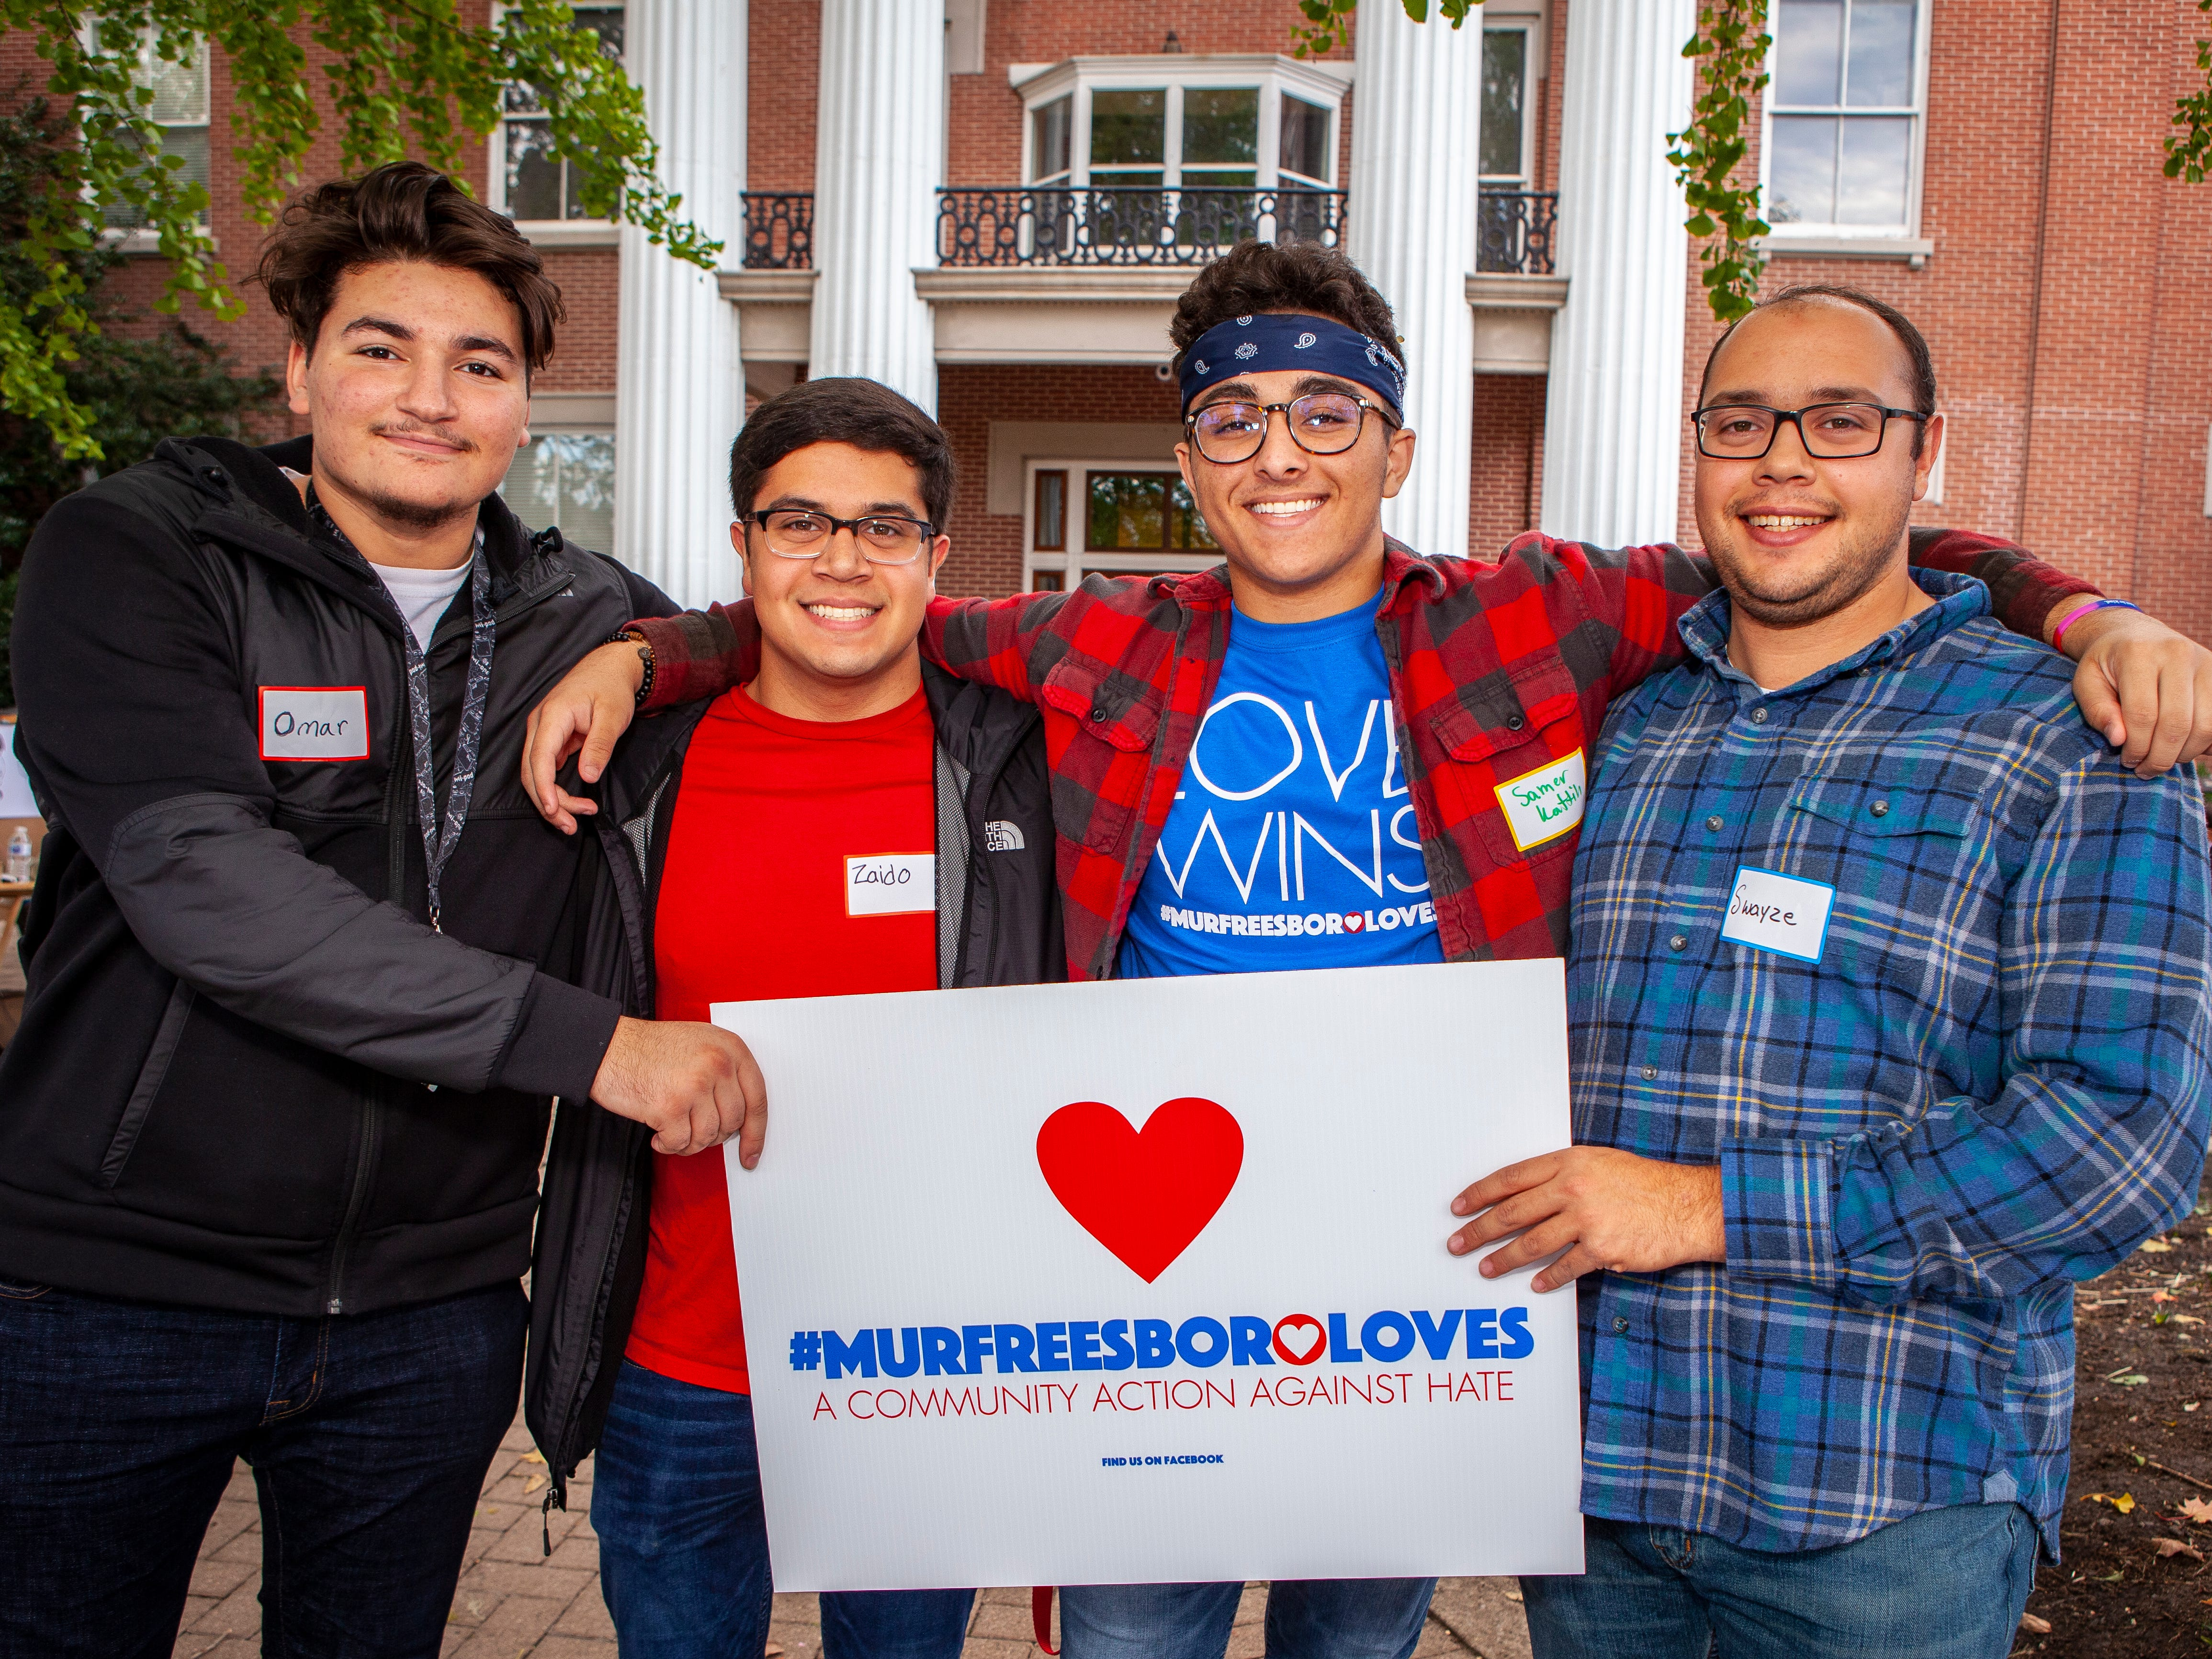 Murfreesboro Loves held an anniversary celebration event Sunday, Oct. 28, 2018 on the Public Square in downtown Murfreesboro.